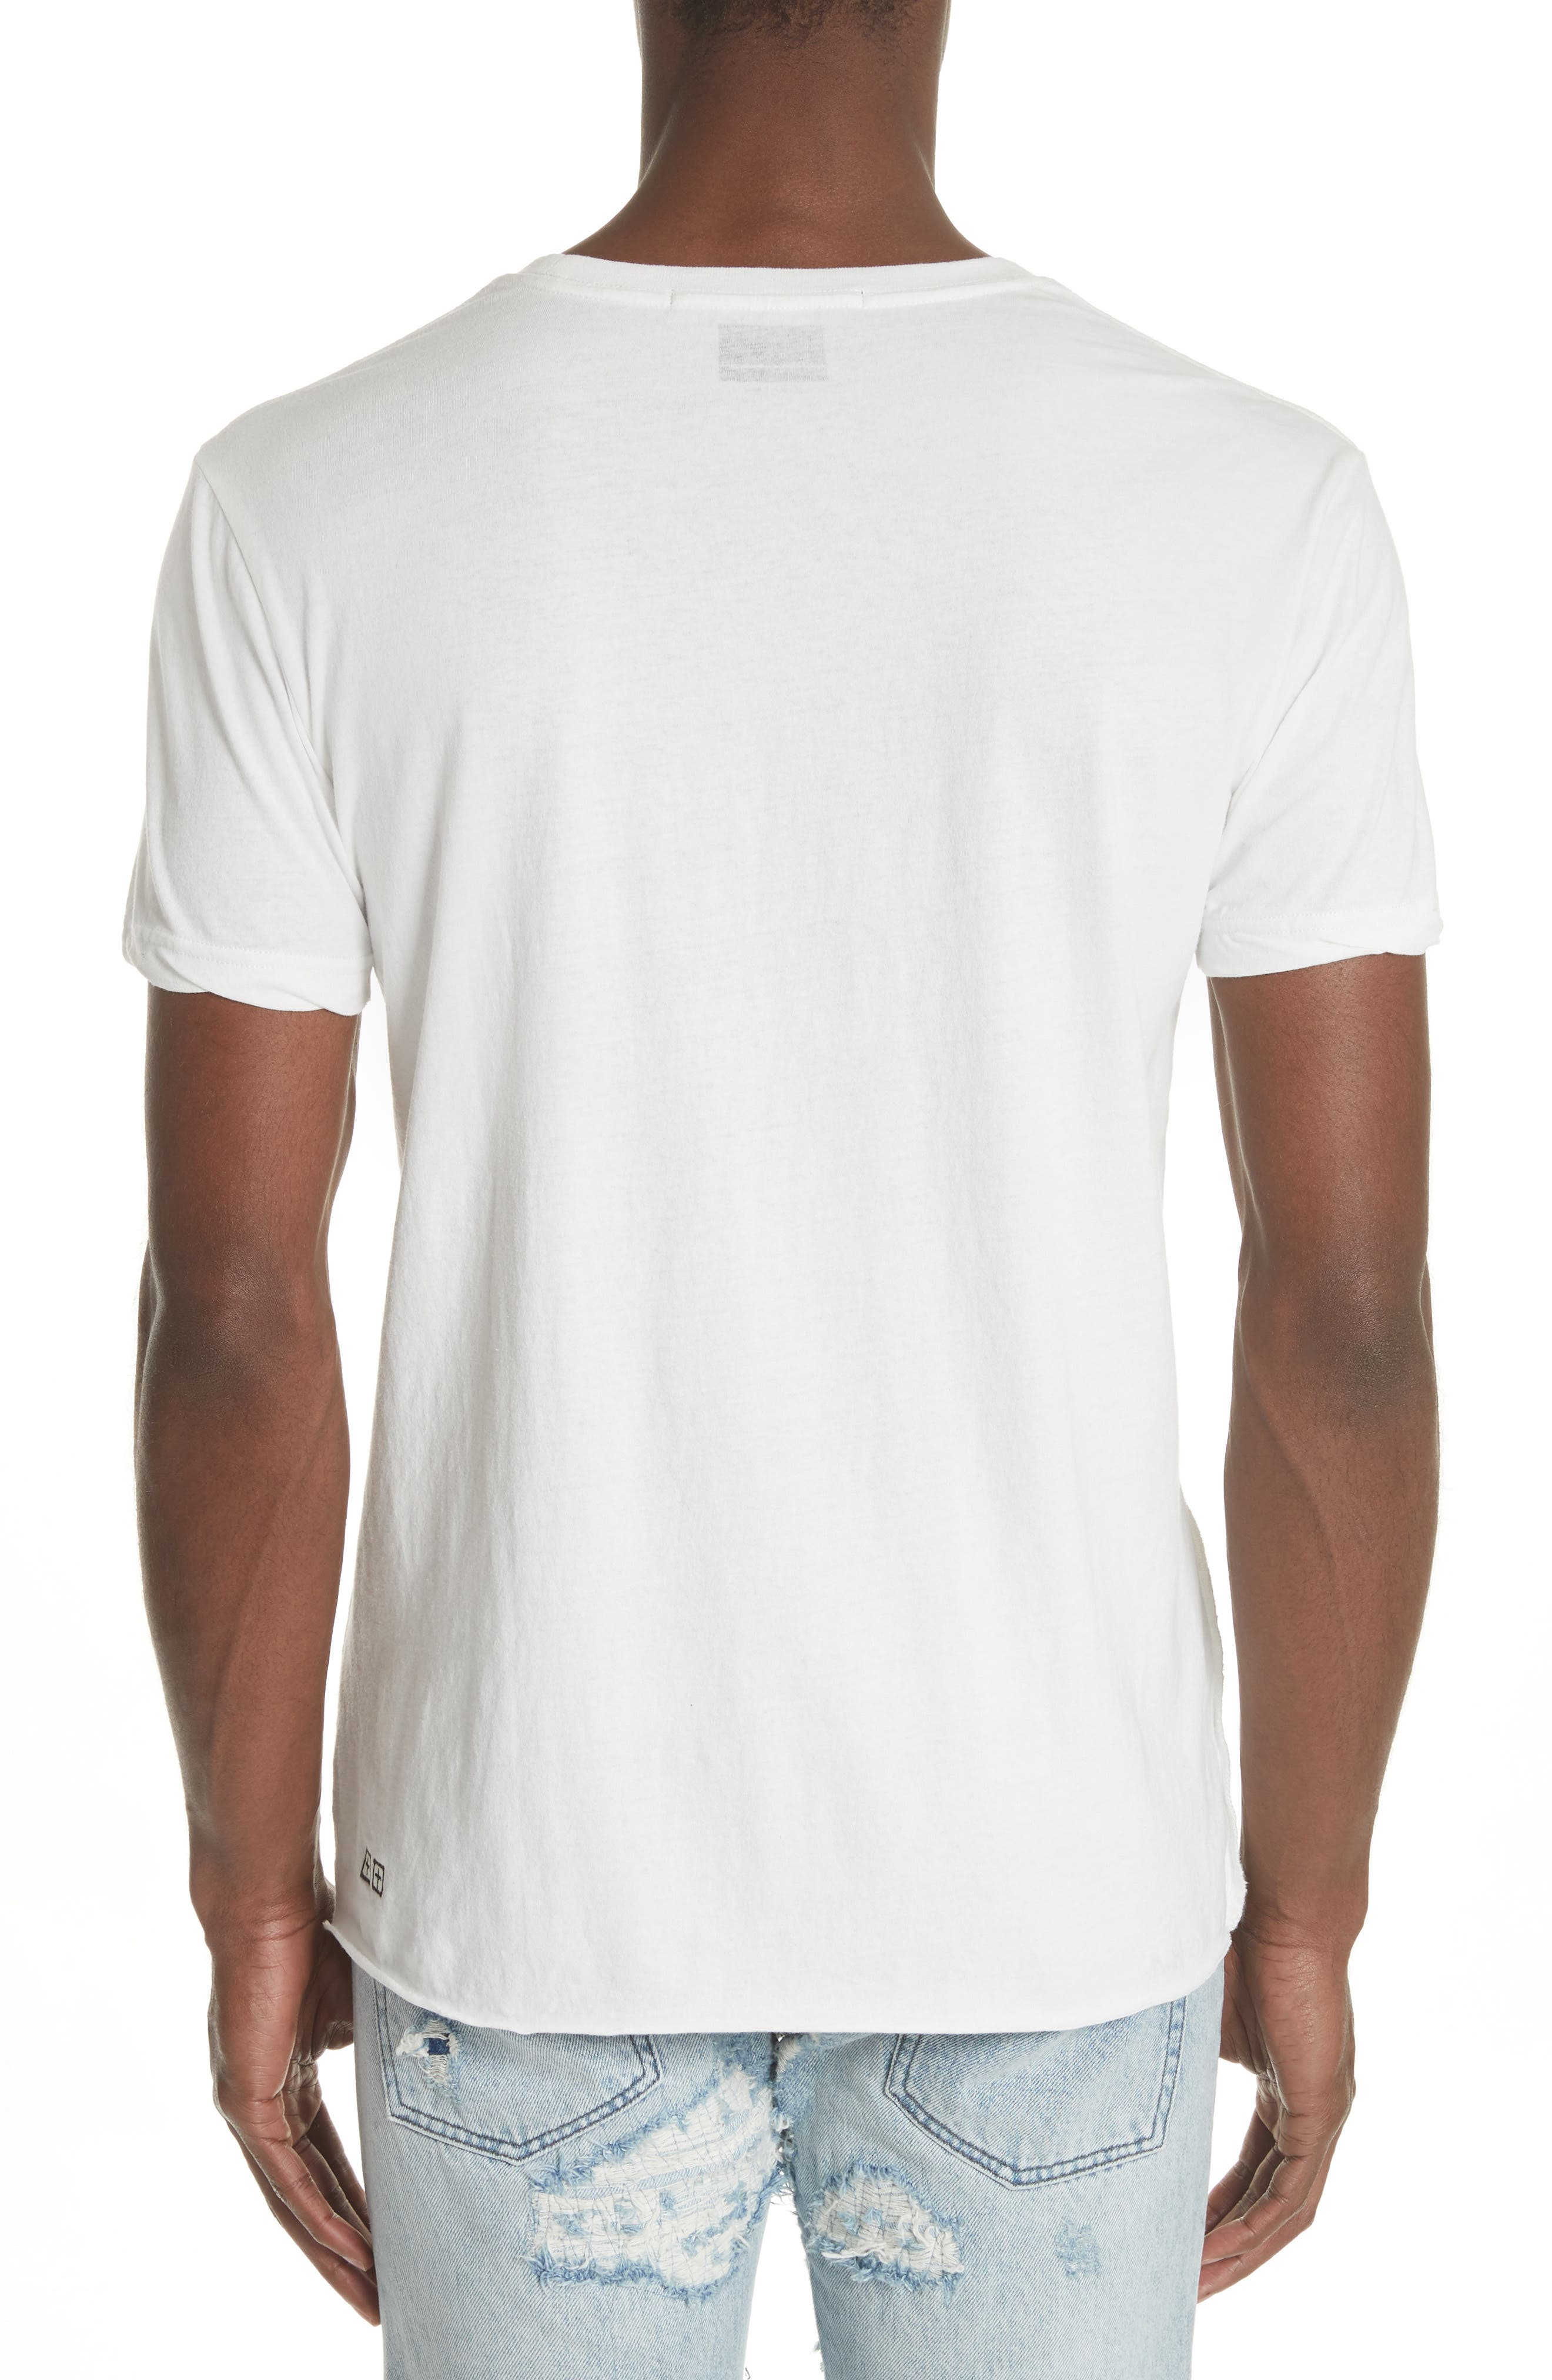 Relax Graphic T-Shirt,                             Alternate thumbnail 2, color,                             100